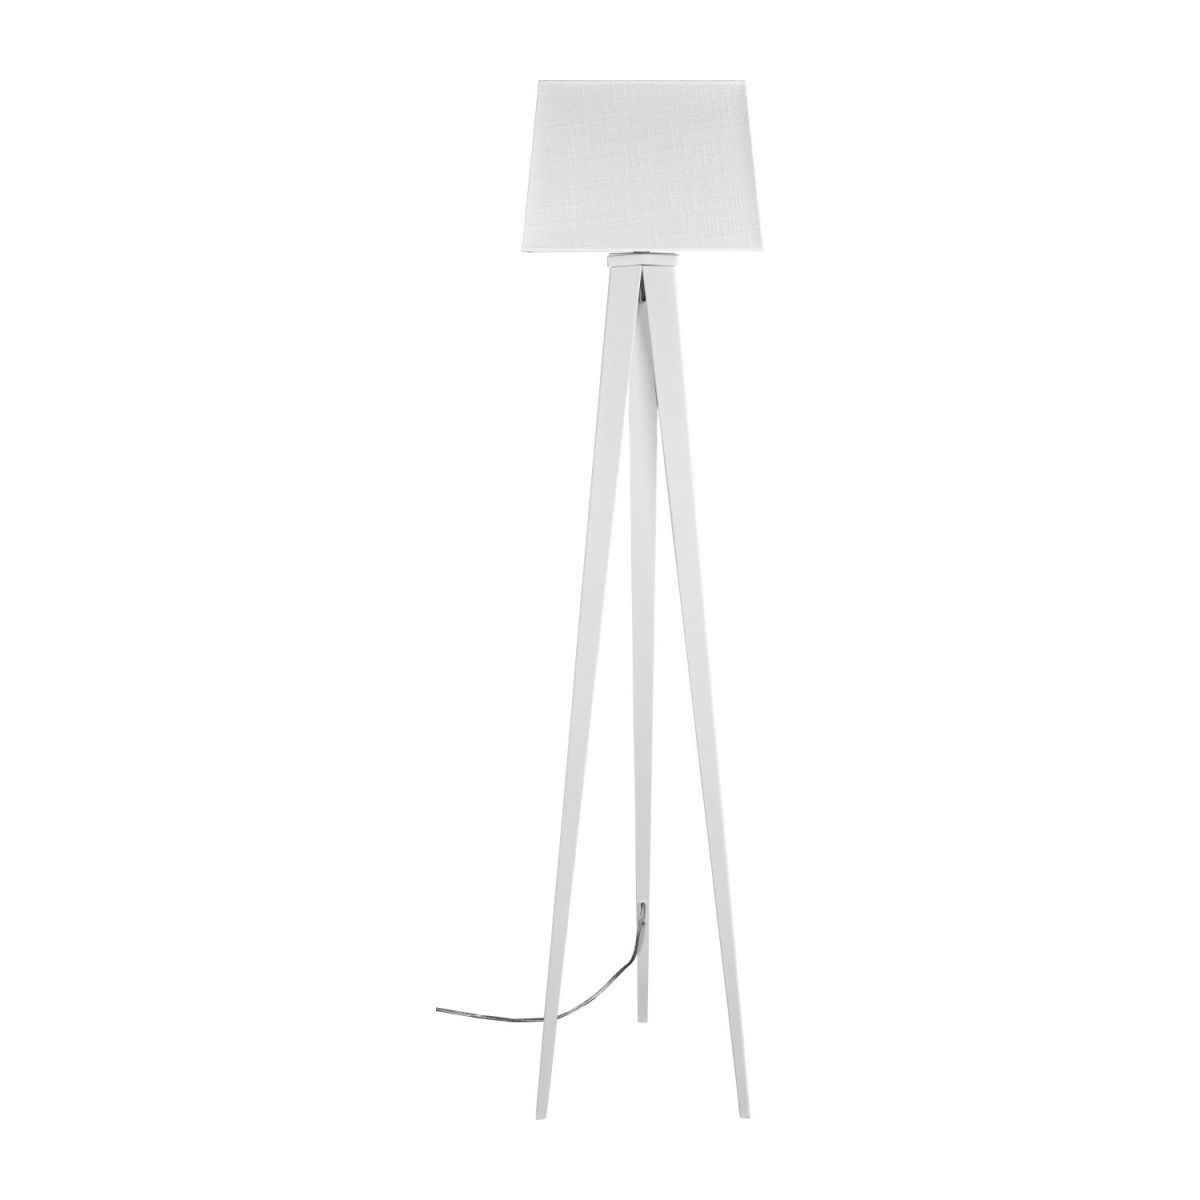 Floor lamp base made of metal, white n°2